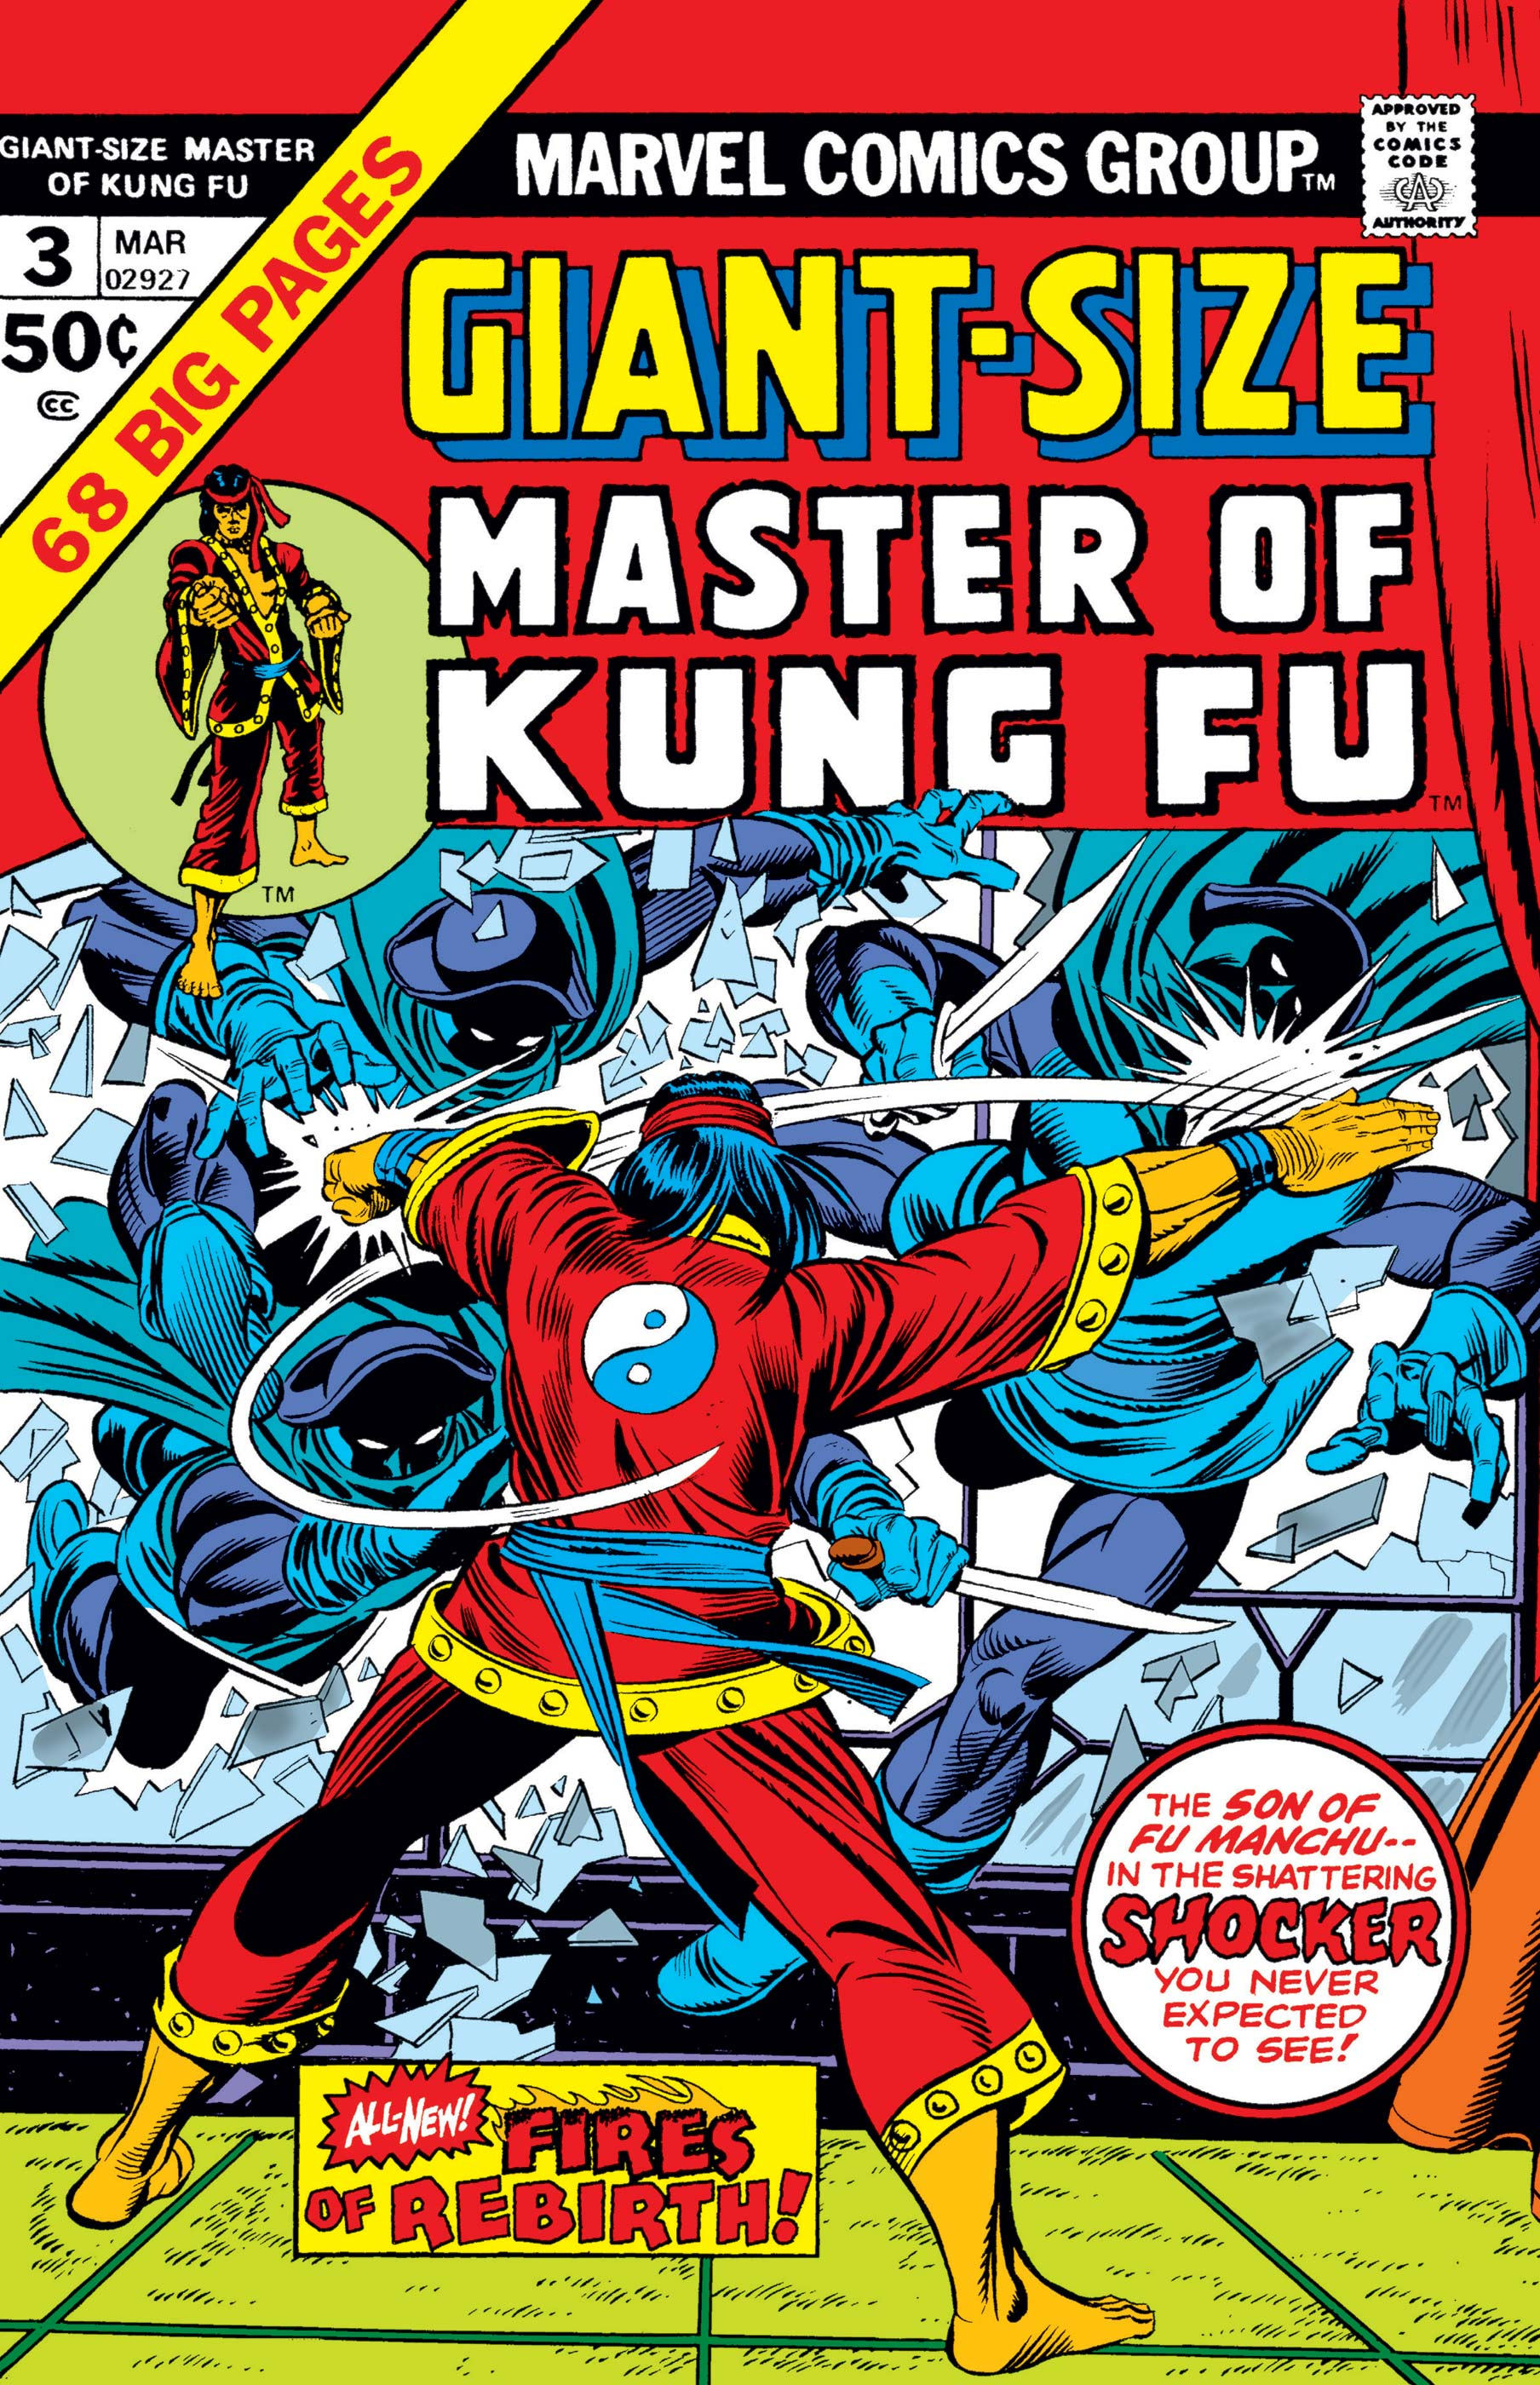 Giant-Size Master of Kung Fu (1974) #3